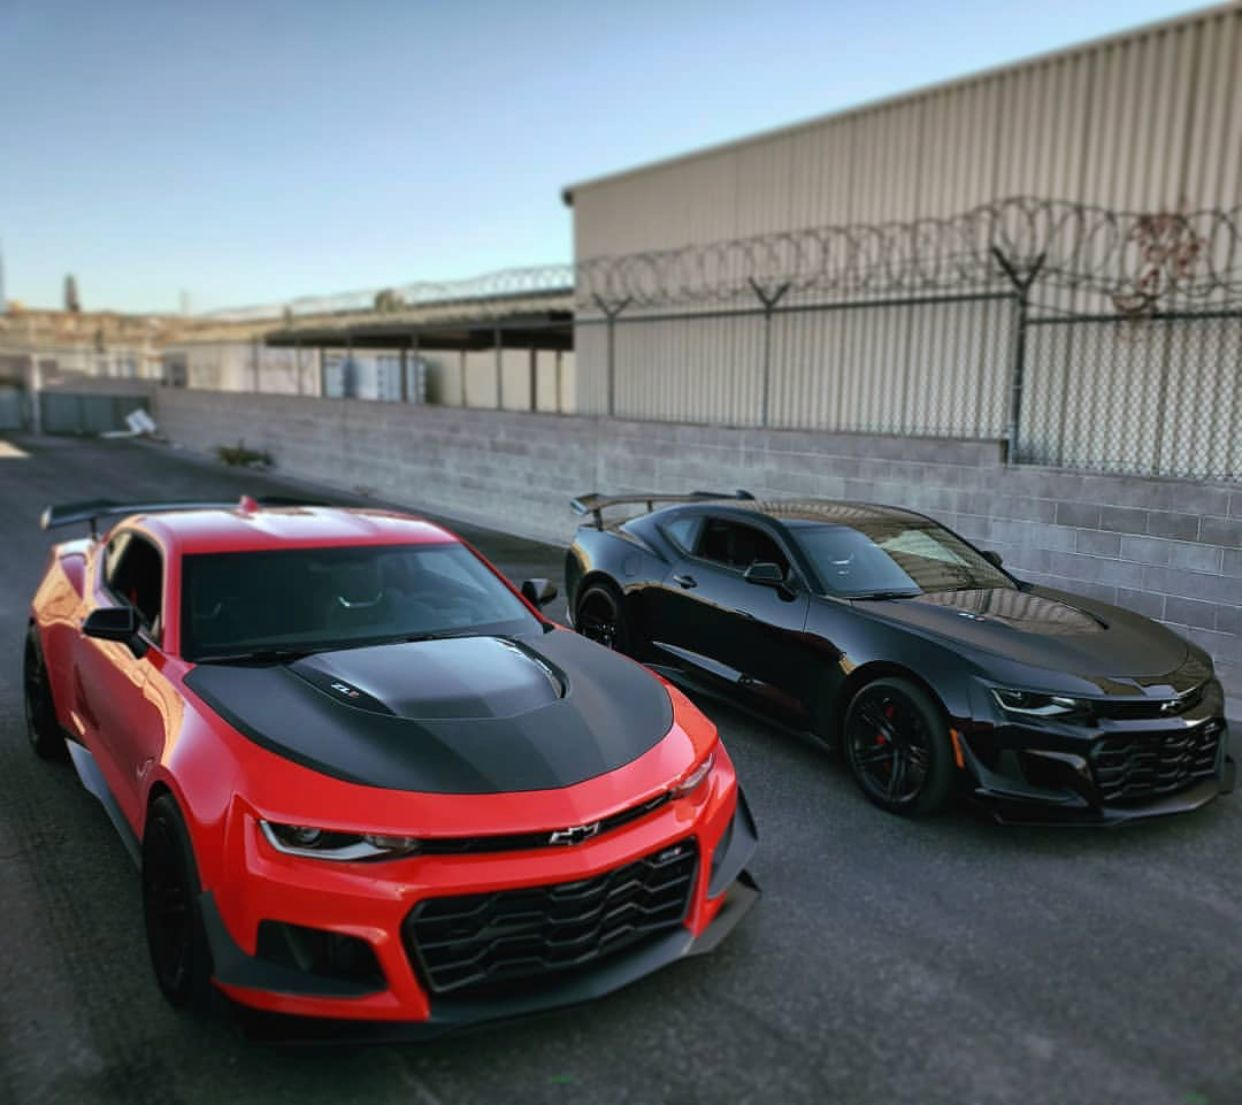 Two Chevrolet Camaro Zl1 1le S Painted In Red Hot And Black Photo